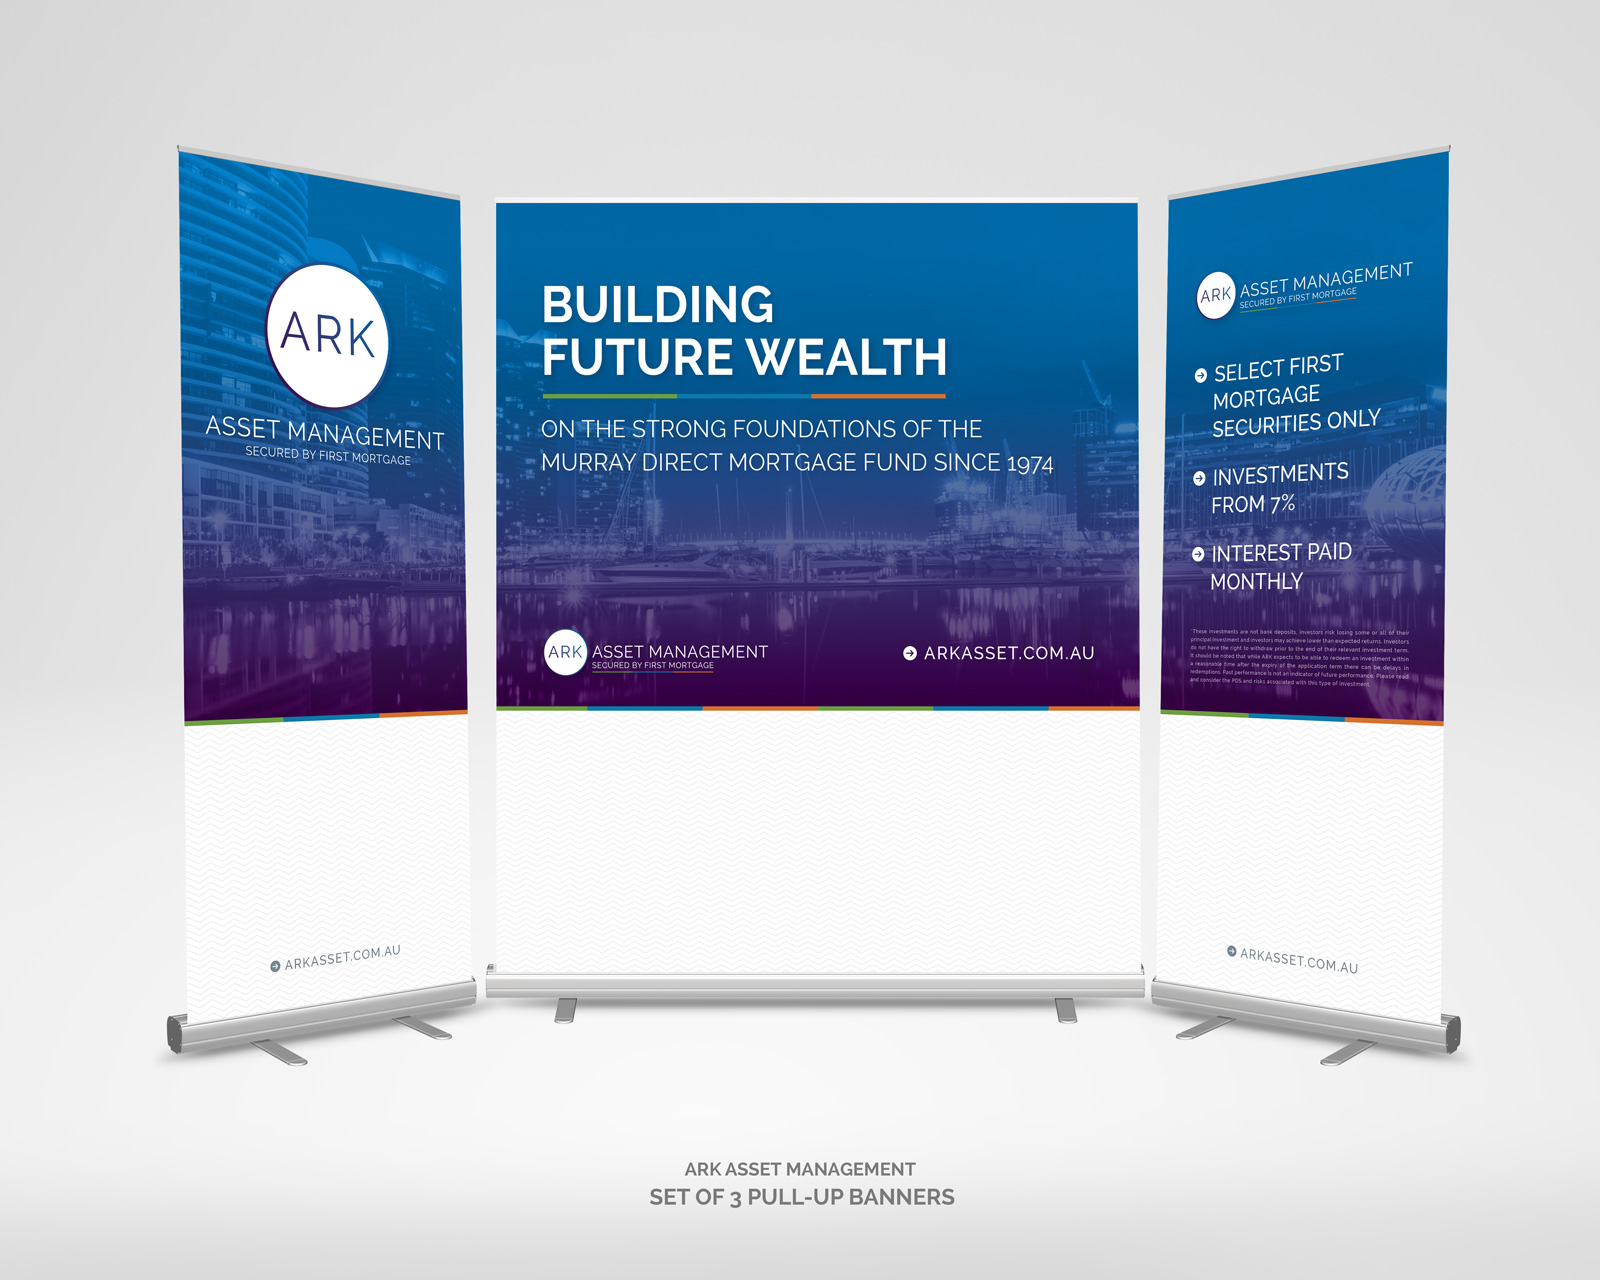 Ark-Asset-Management-3-Banner-Set-MOCKUP.jpg